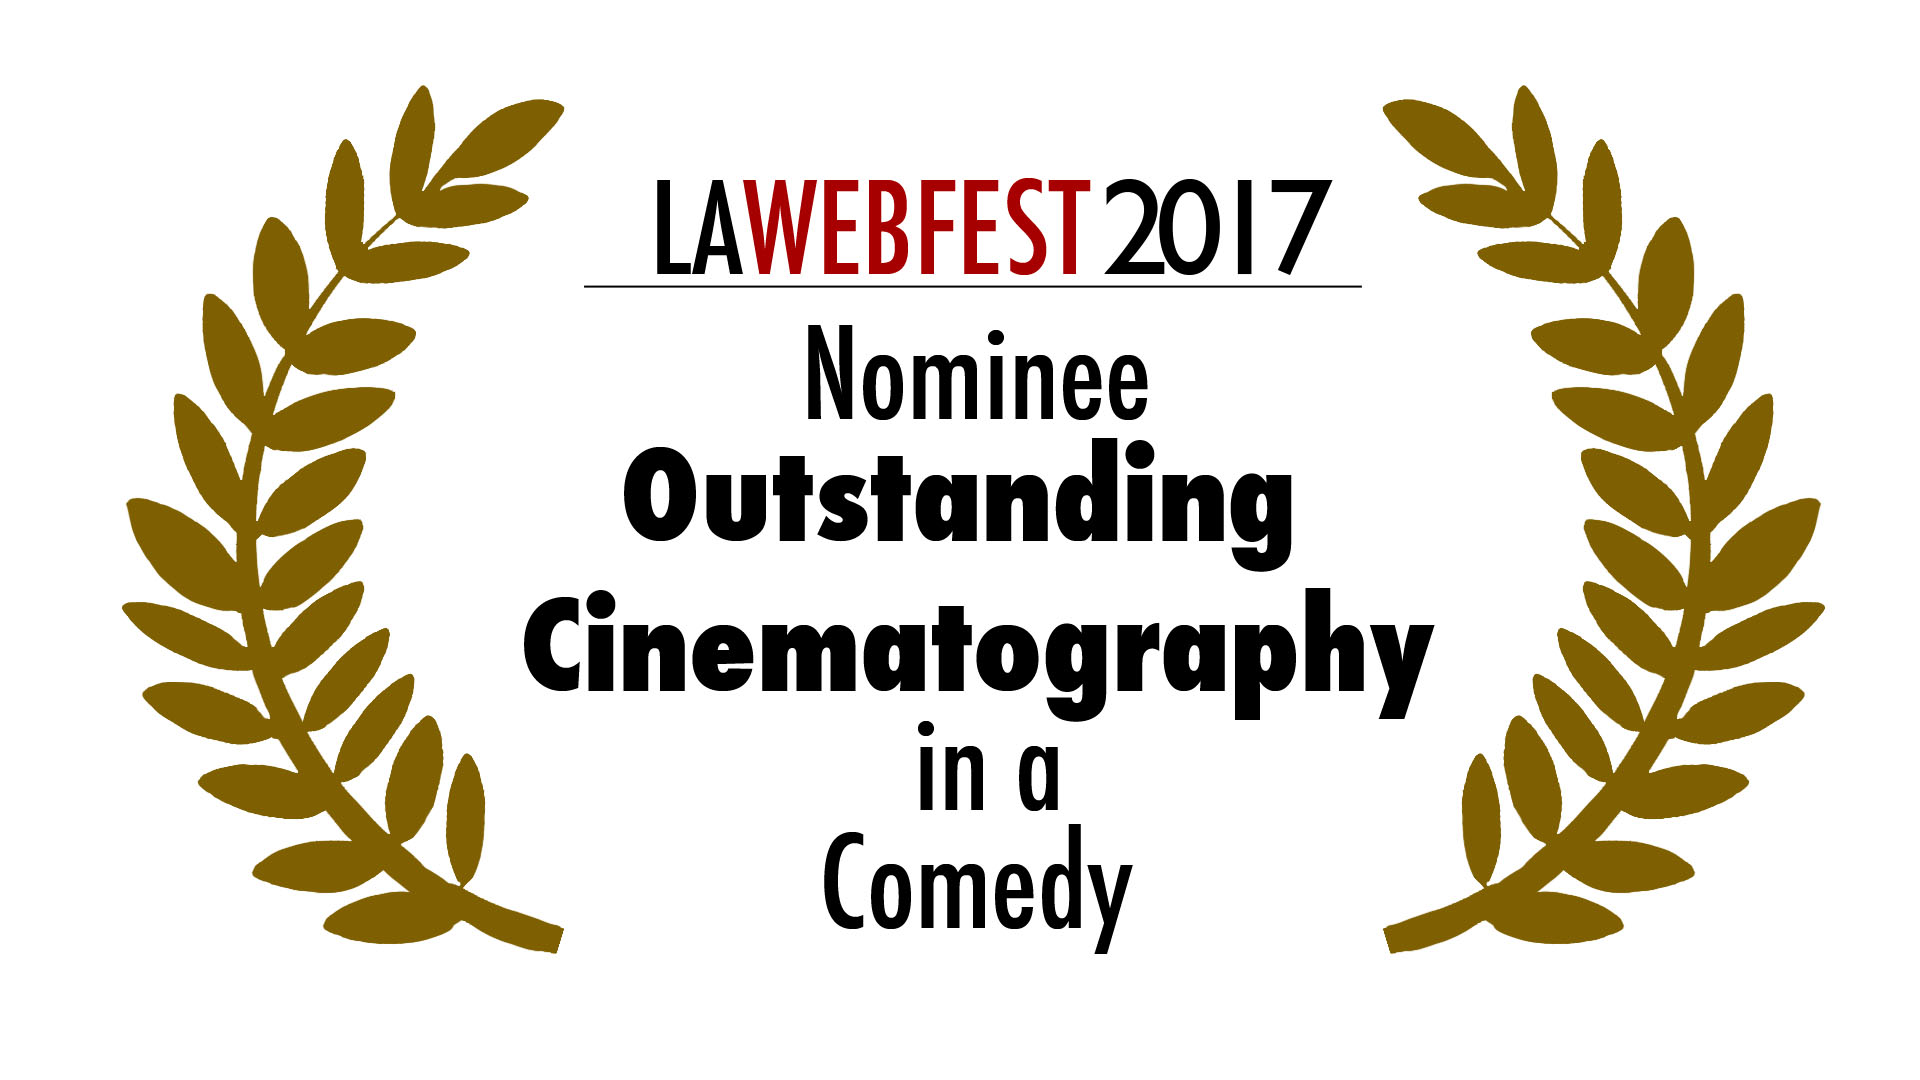 LA Webfest 2017 Cinematography nominee